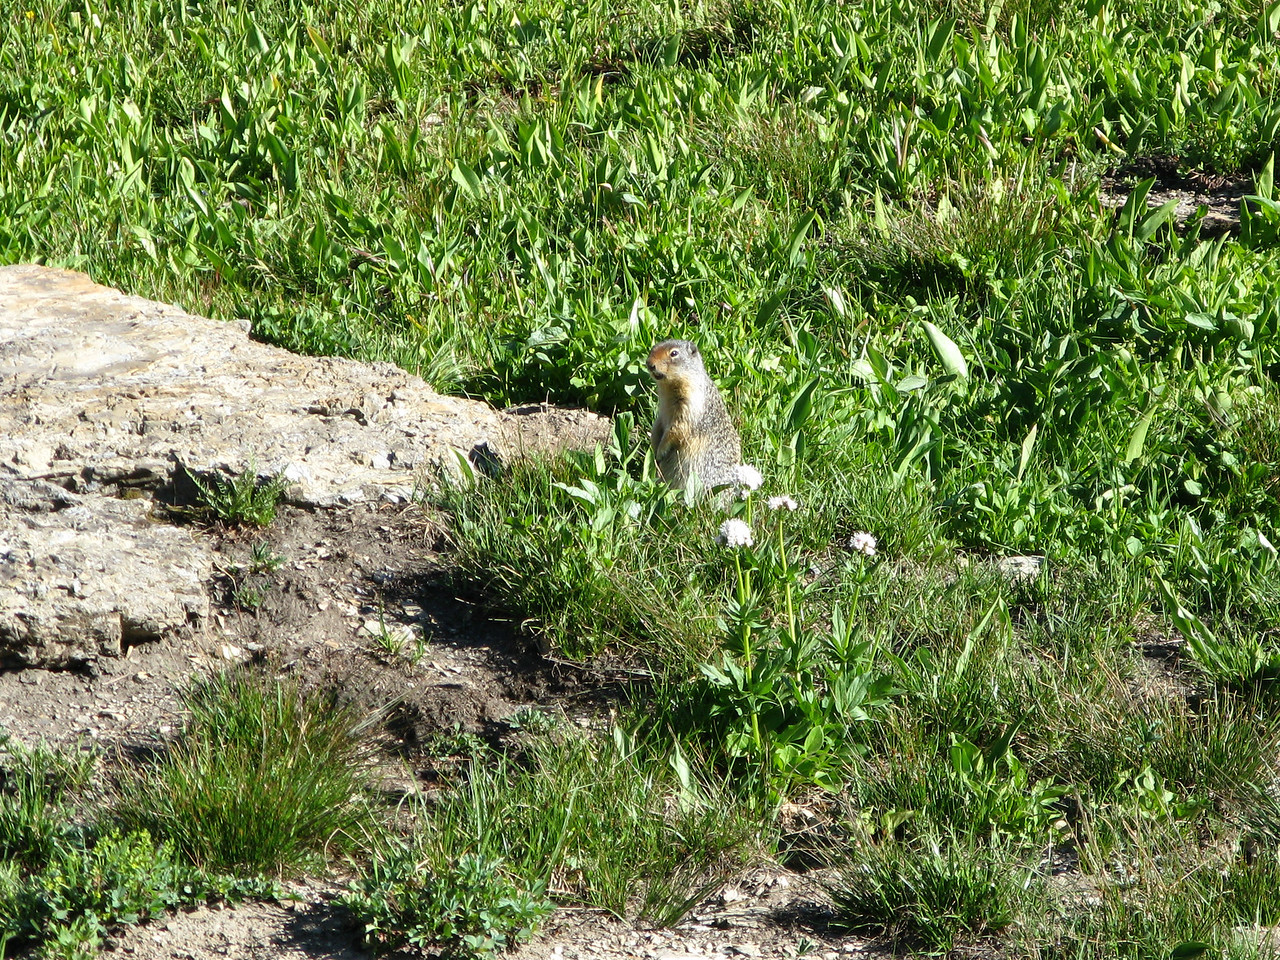 There were lots of ground squirrels, like this one, but very few chipmunks.